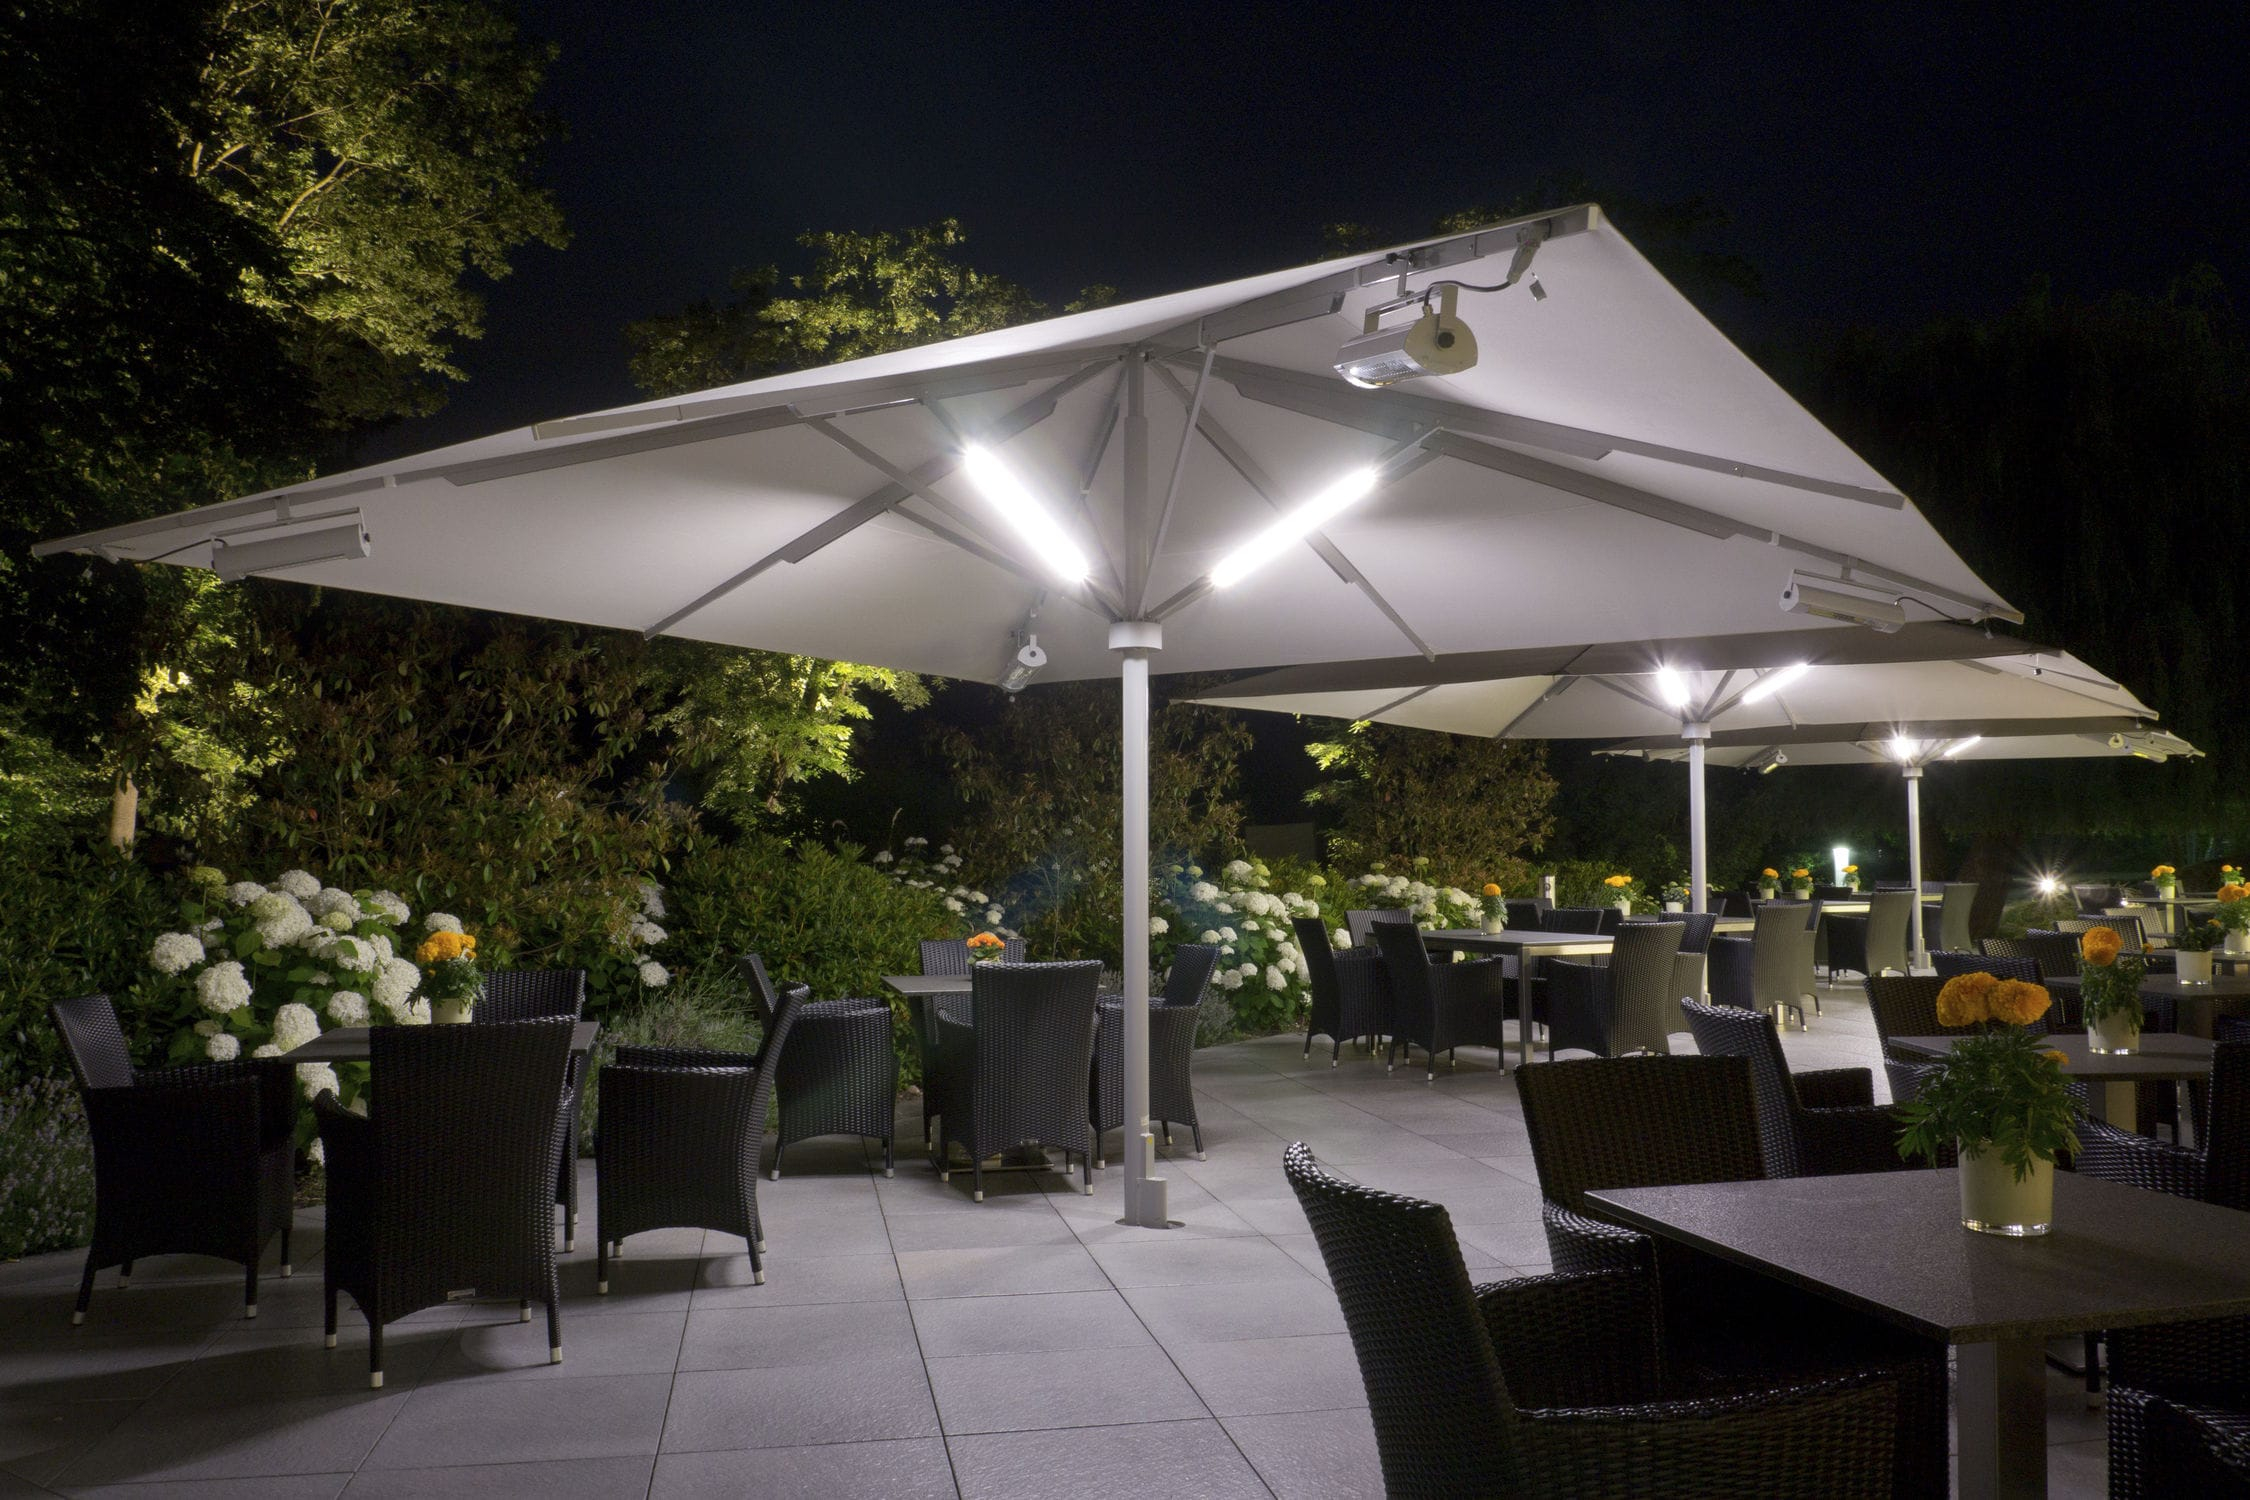 Offset Patio Umbrella Led Lights Suitable Plus Patio Umbrella Solar For  Size 2250 X 1500